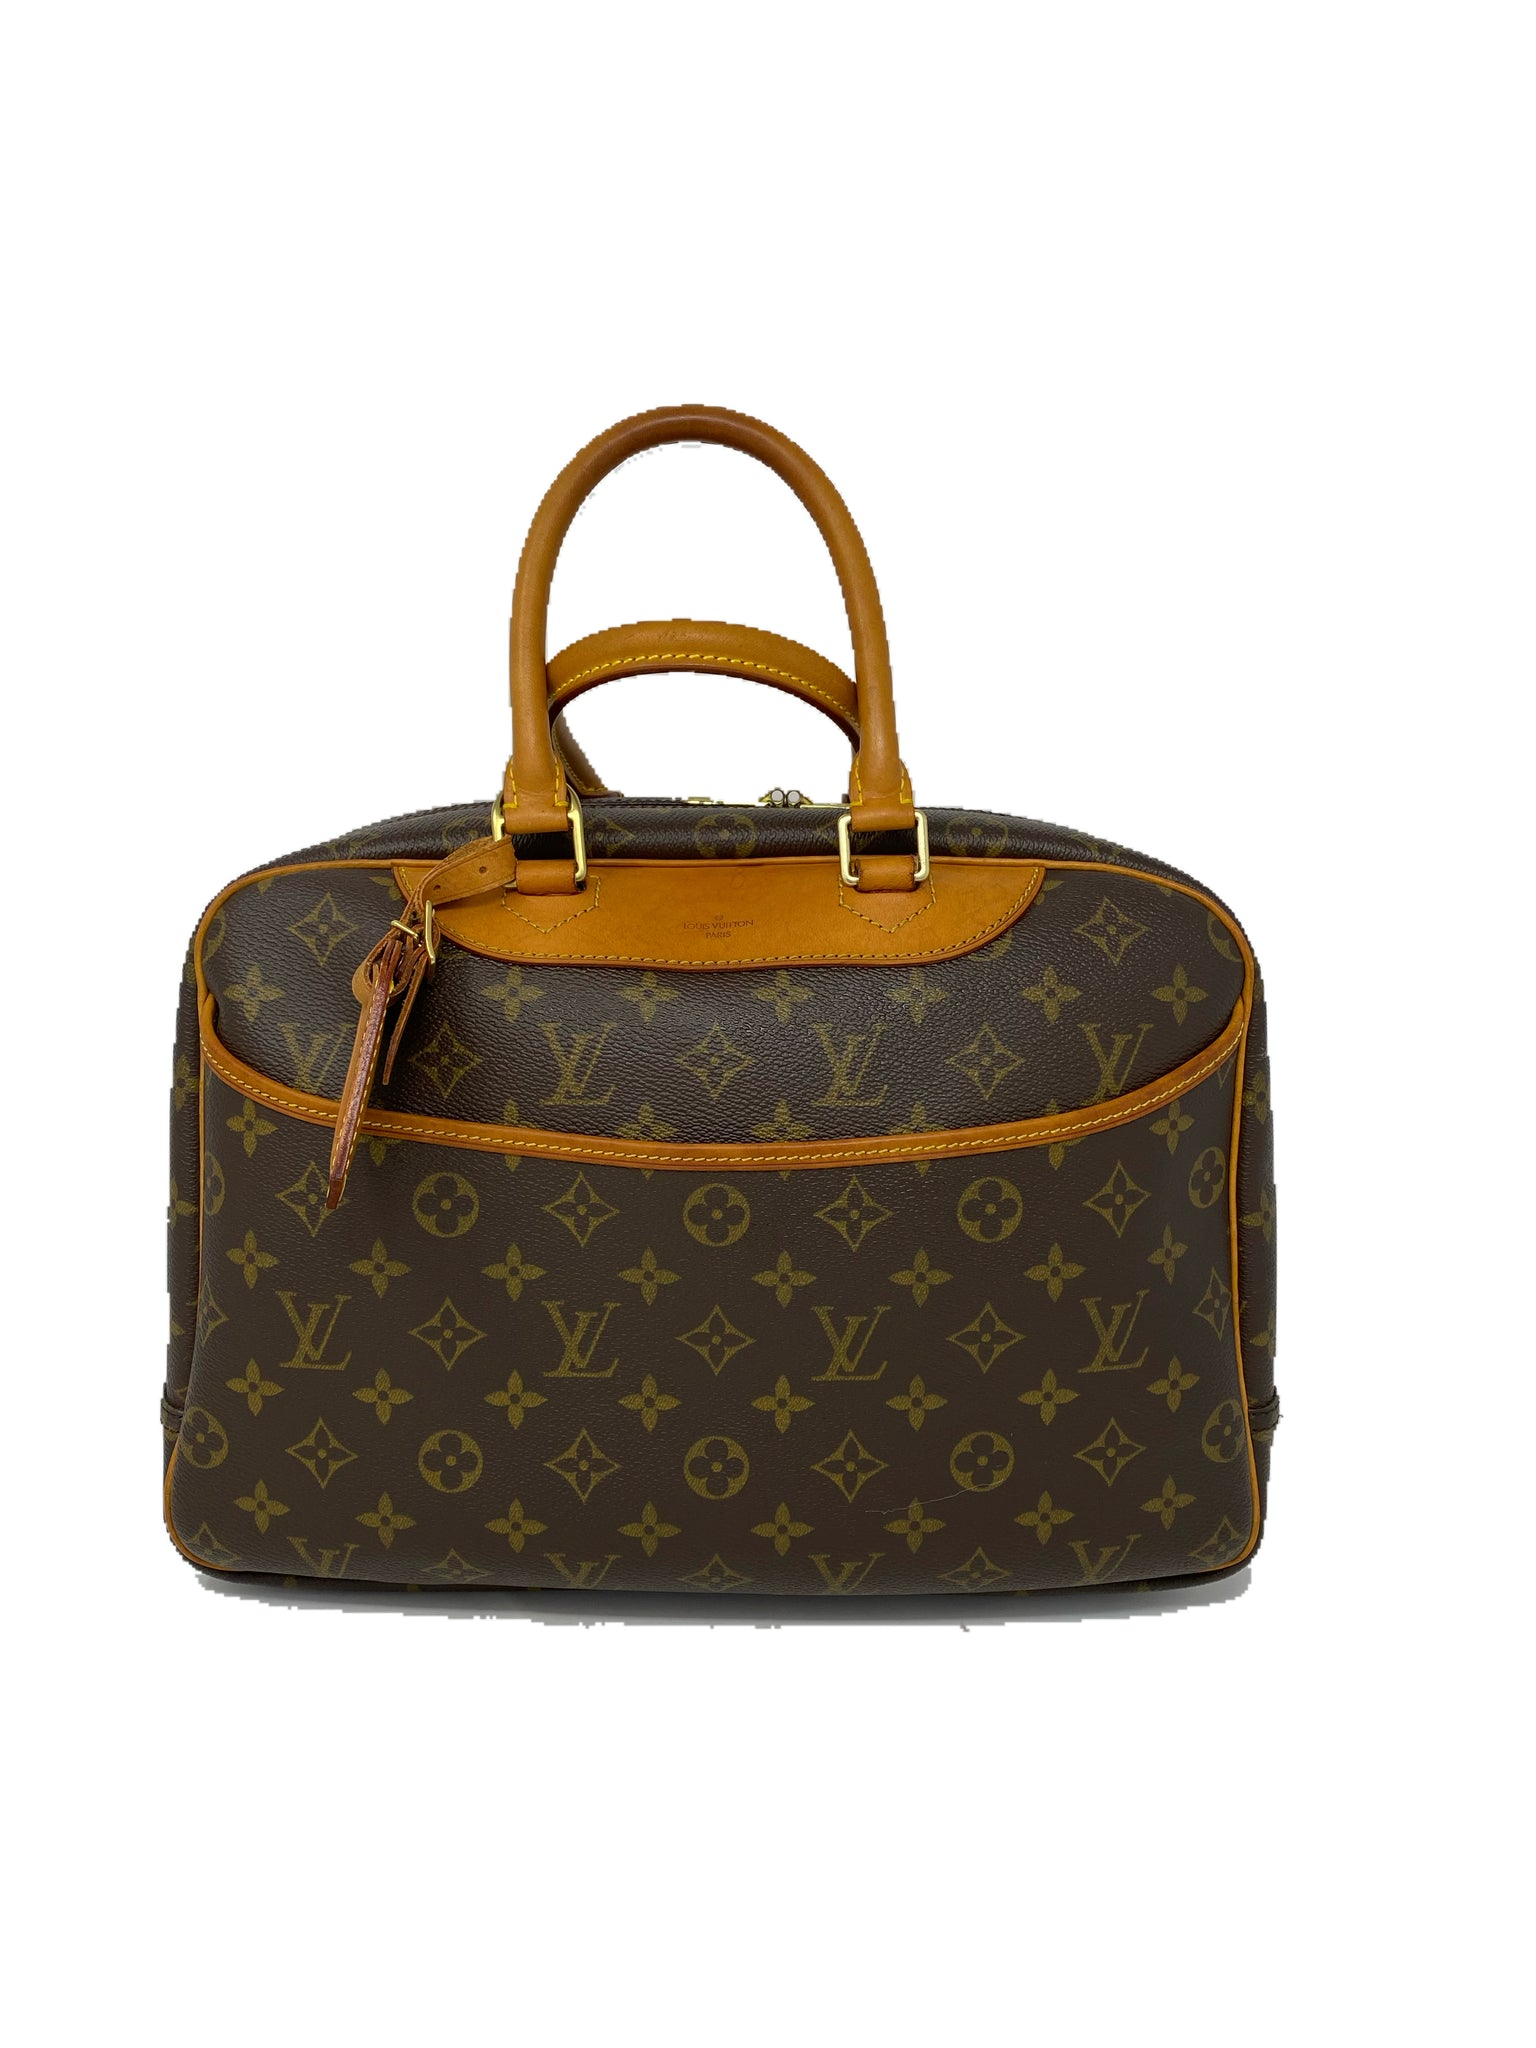 Louis Vuitton Deauville Monogram Canvas Handbag